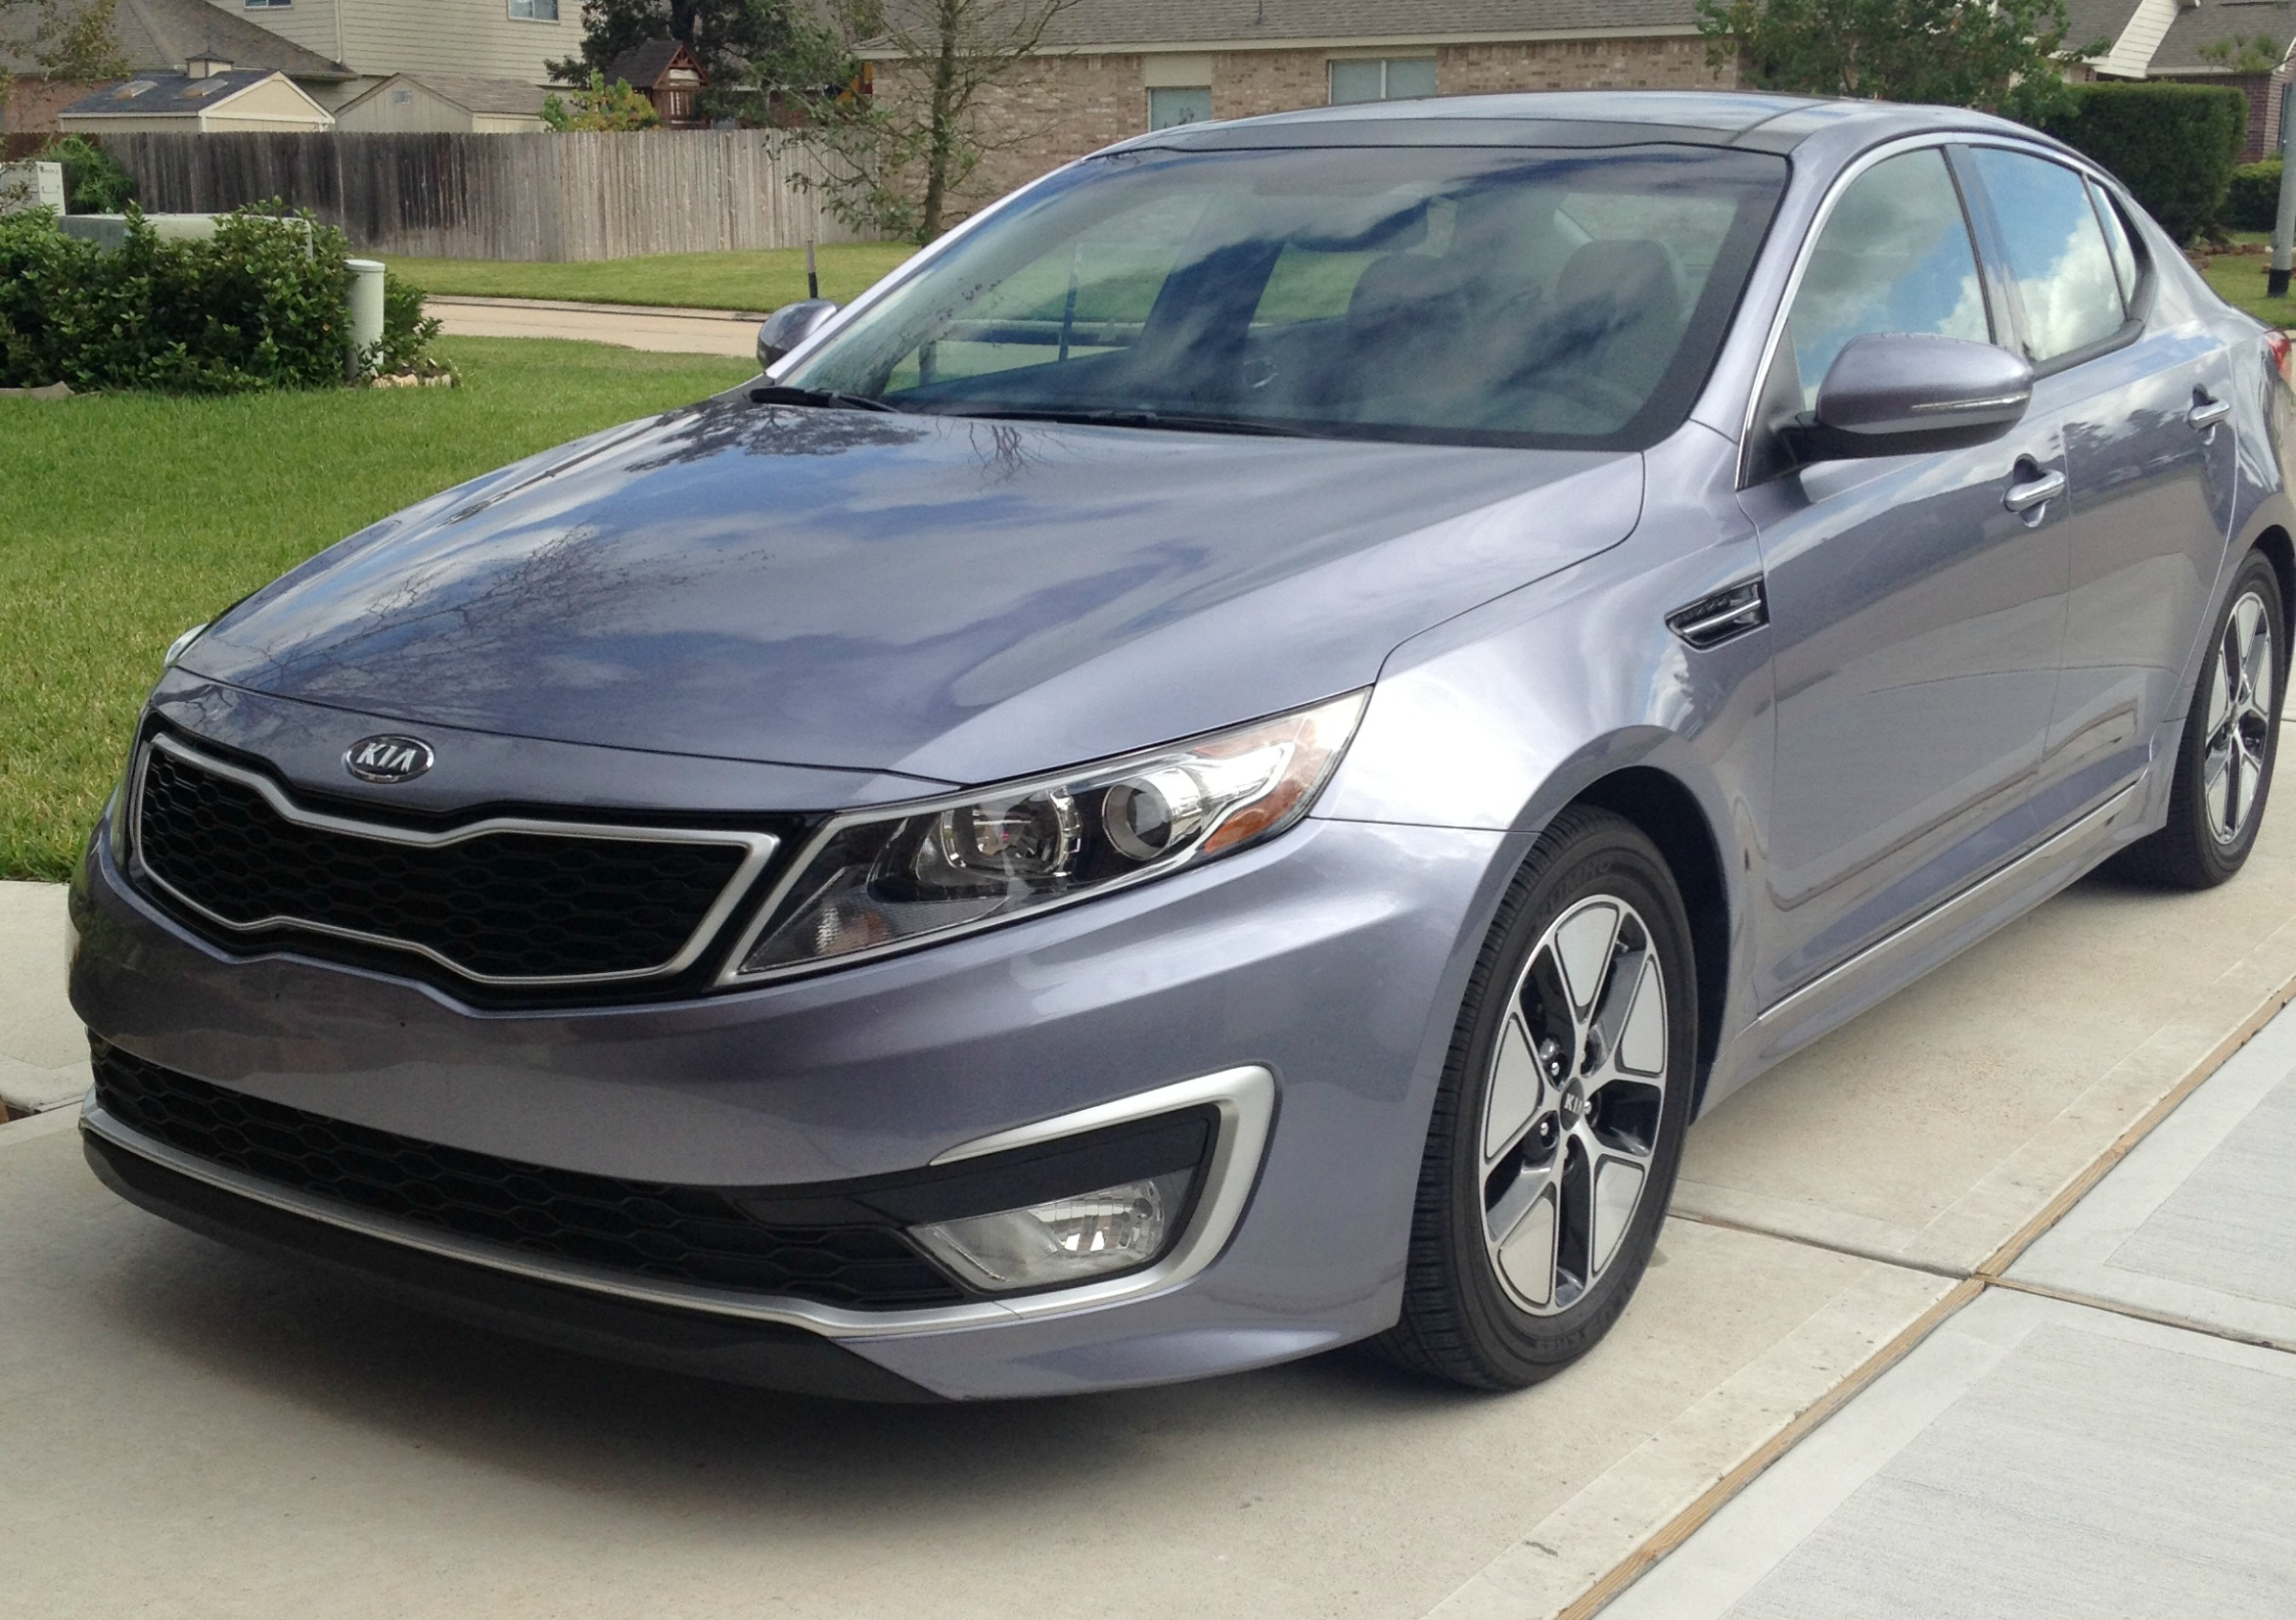 2012 kia optima hybrid premium review simply being mommy. Black Bedroom Furniture Sets. Home Design Ideas